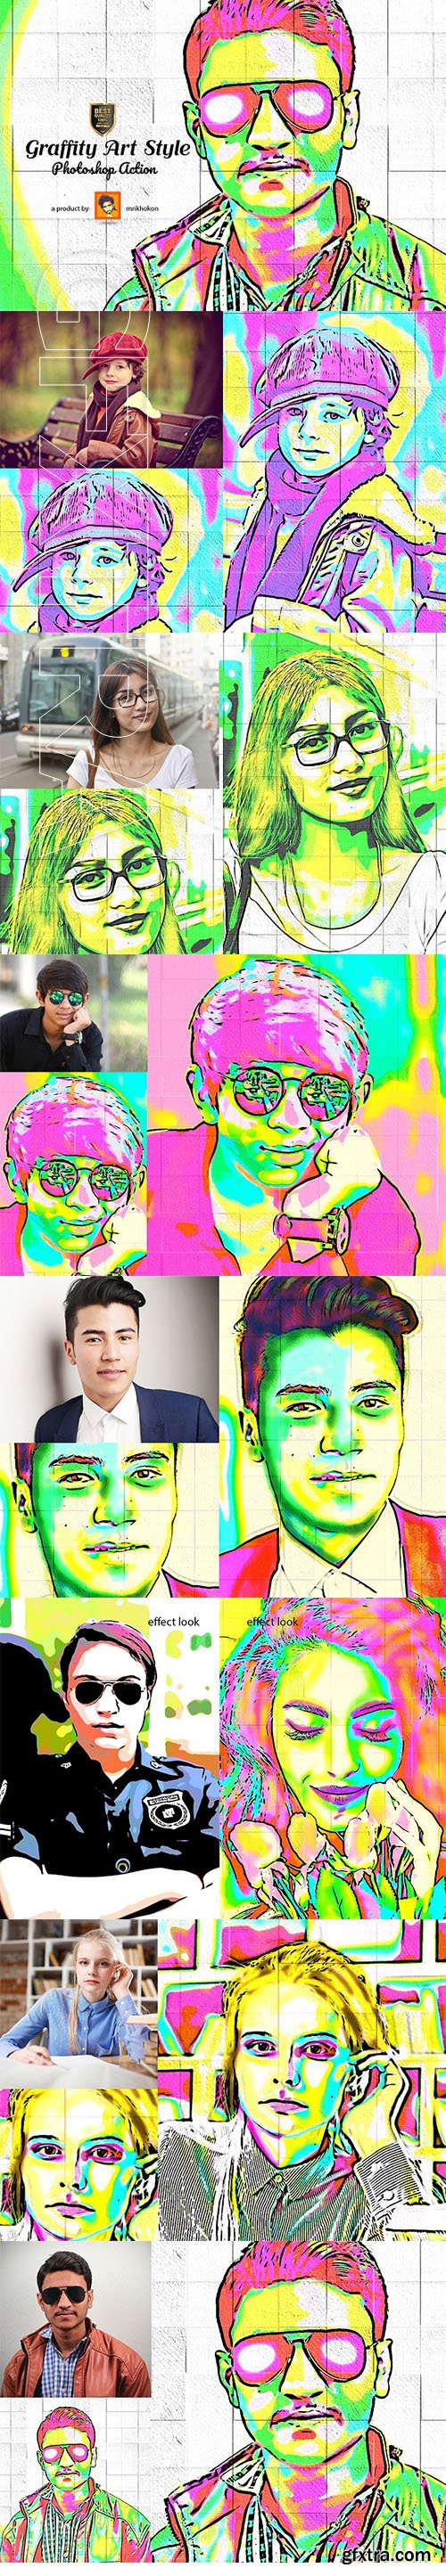 CreativeMarket - Graffity Art Style Photoshop Action 3072169